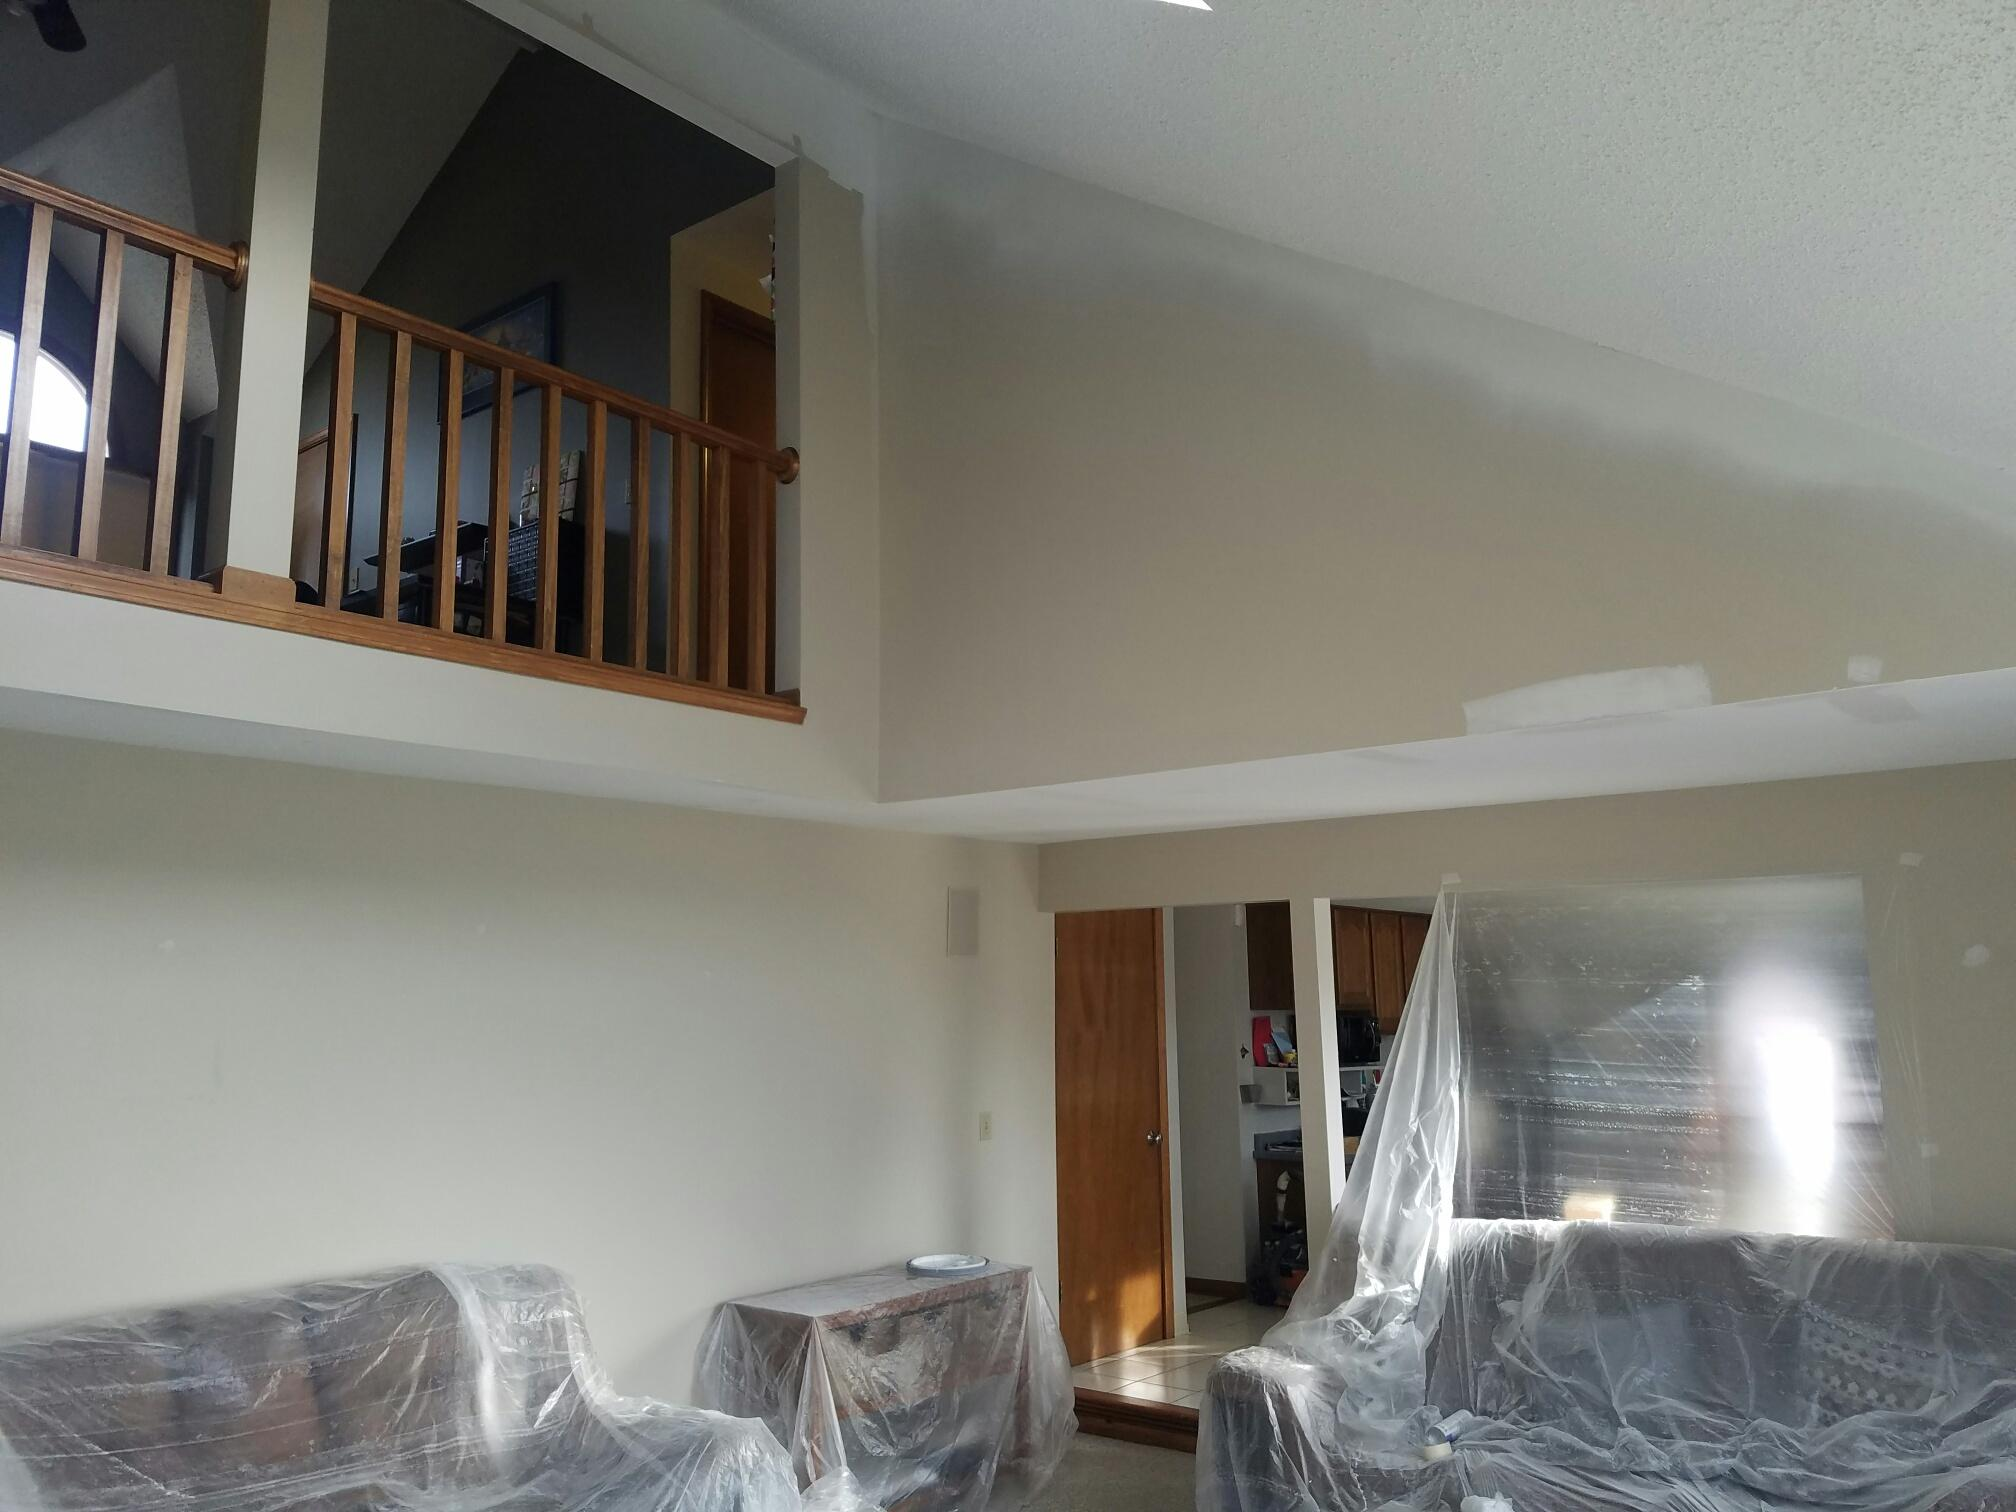 residential painter - Hamburg, NY